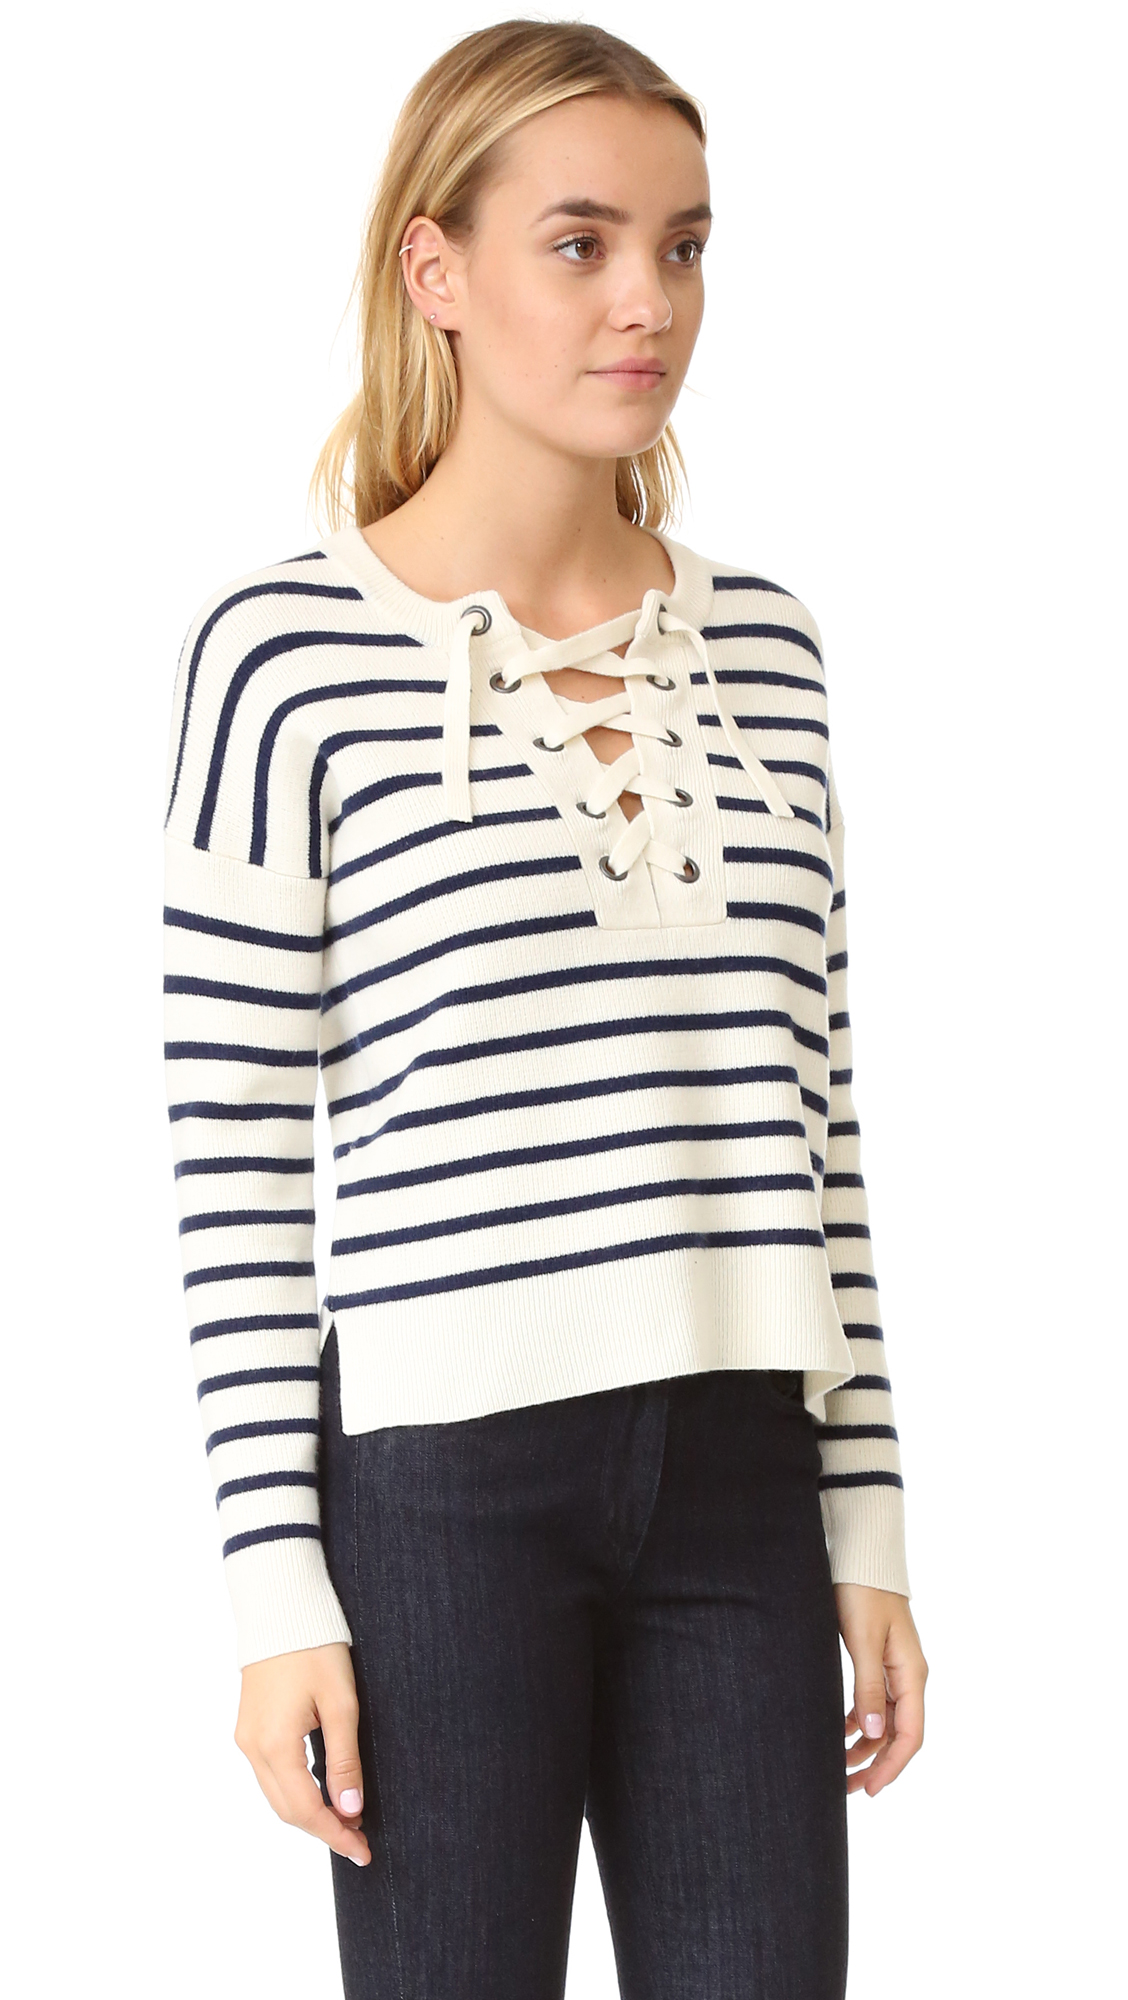 Madewell Striped Lace Up Pullover Sweater | SHOPBOP